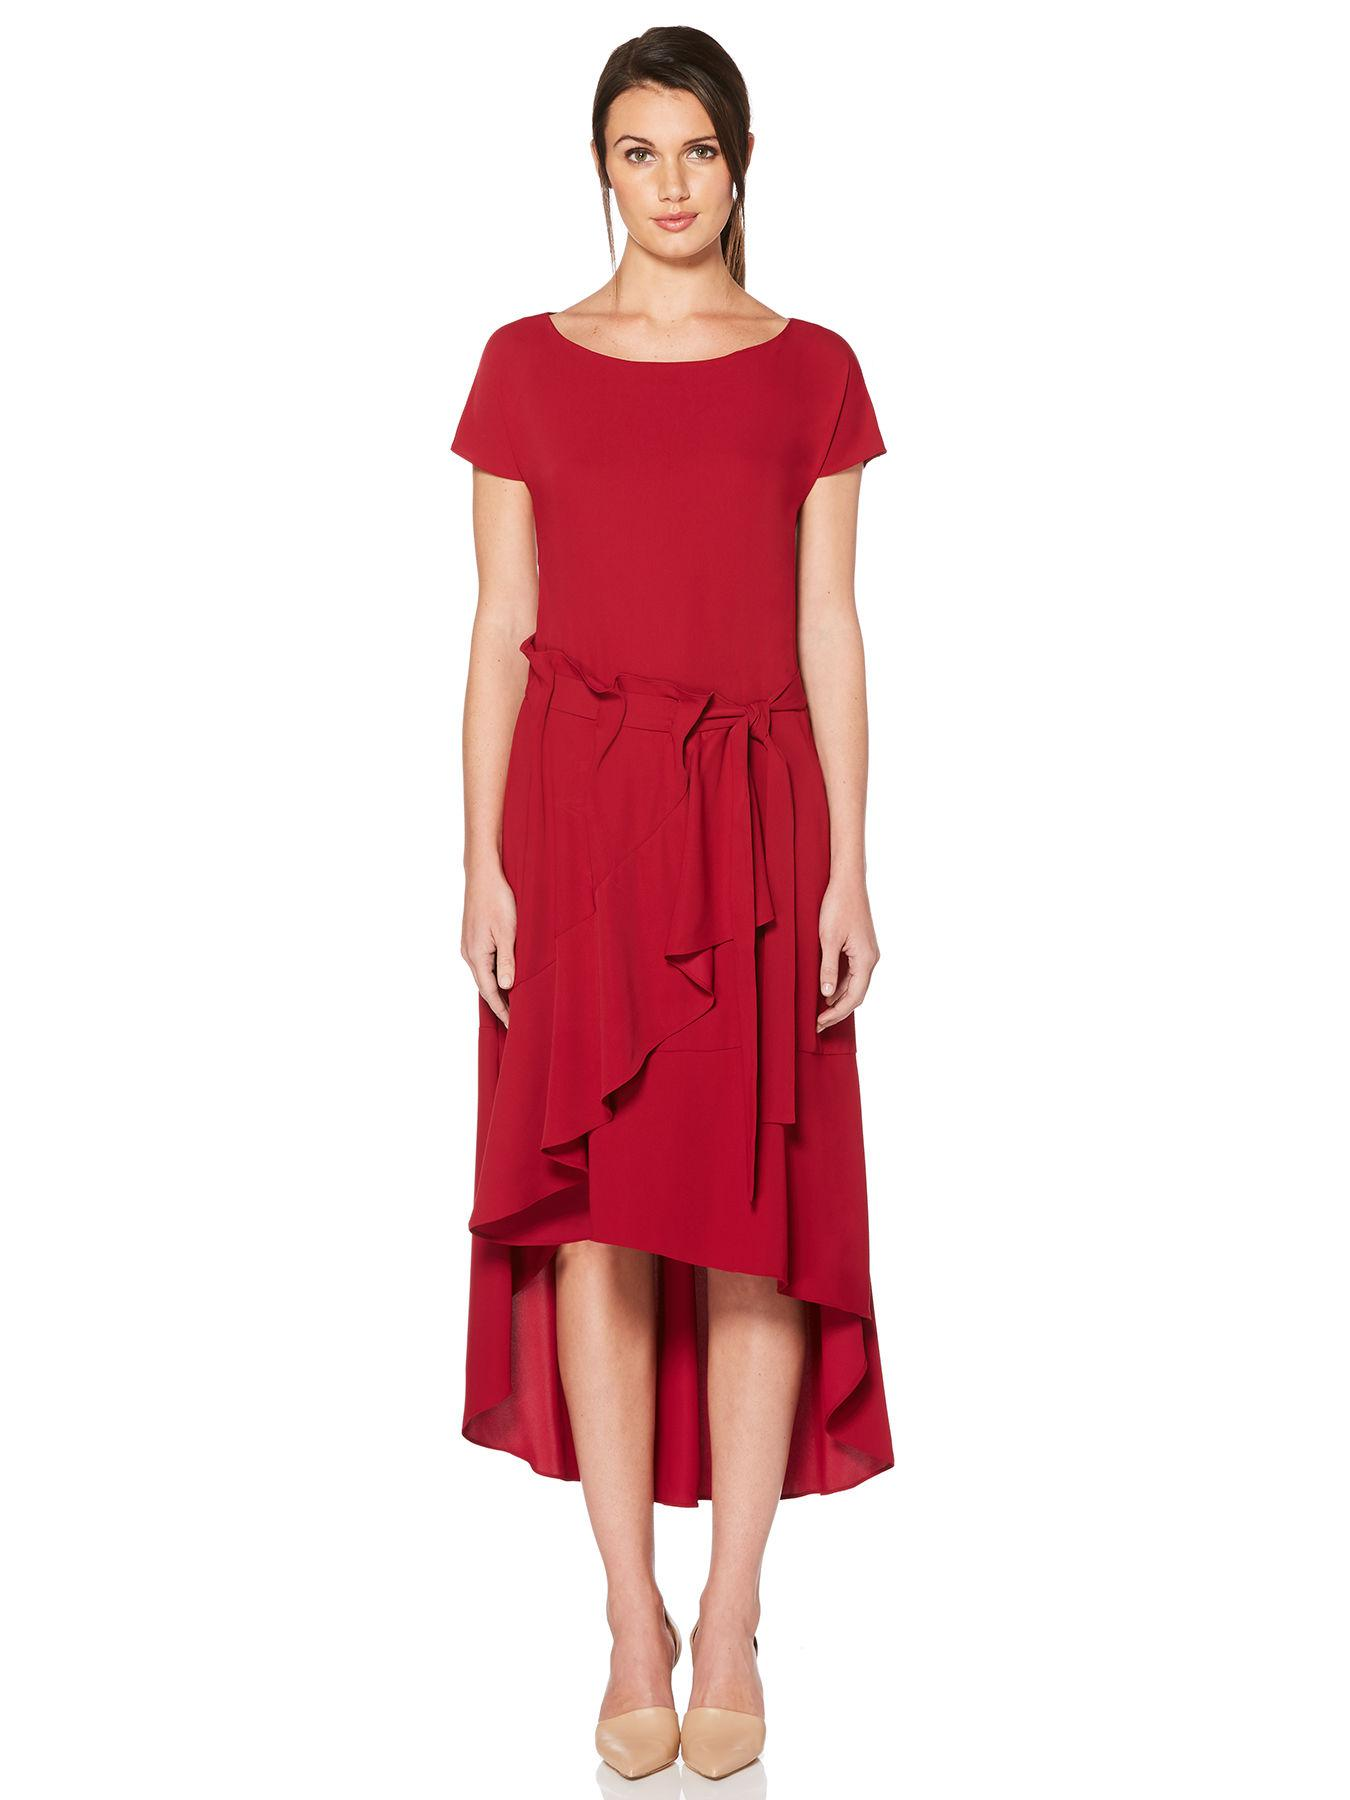 5058205d67 Lyst - Laundry By Shelli Segal Asymmetrical High-low Dress in Red